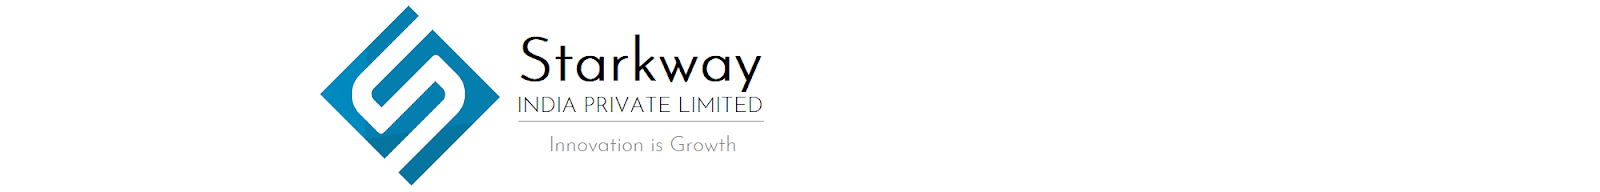 Starkway Official Site - Innovation is Growth | Starkway